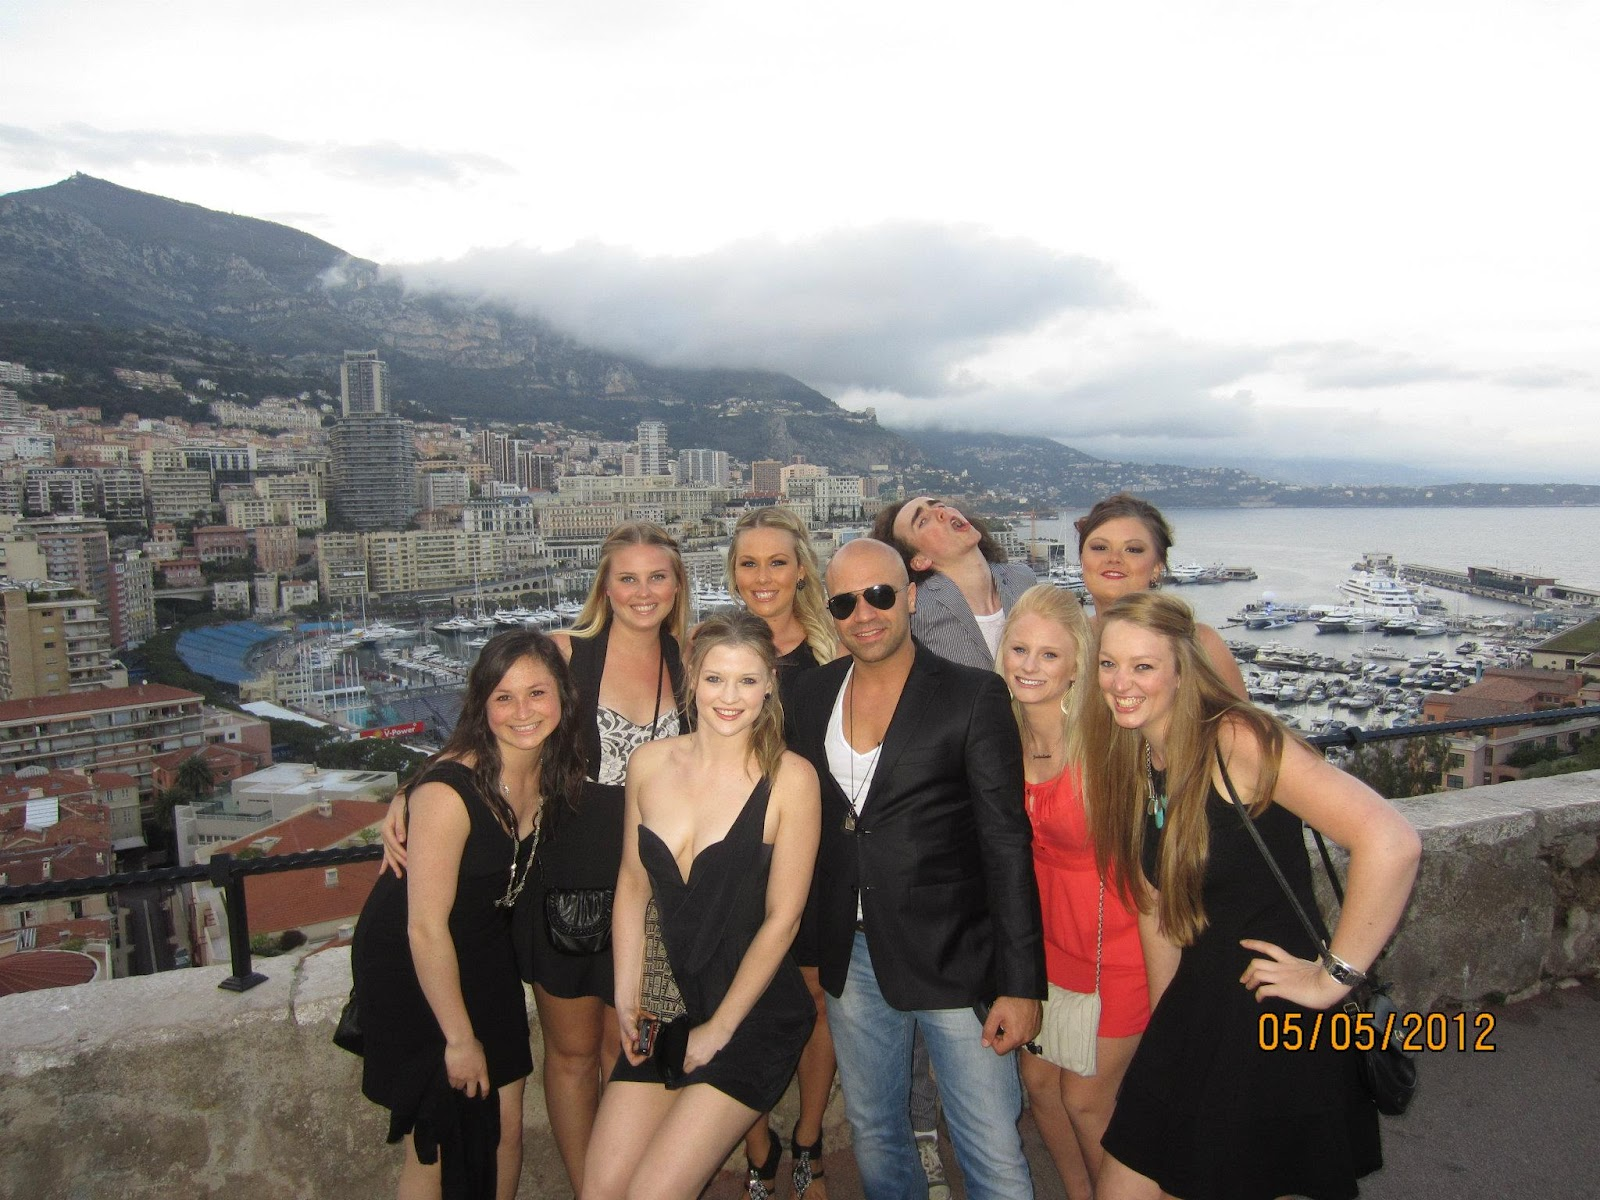 dress code for casino at monte carlo